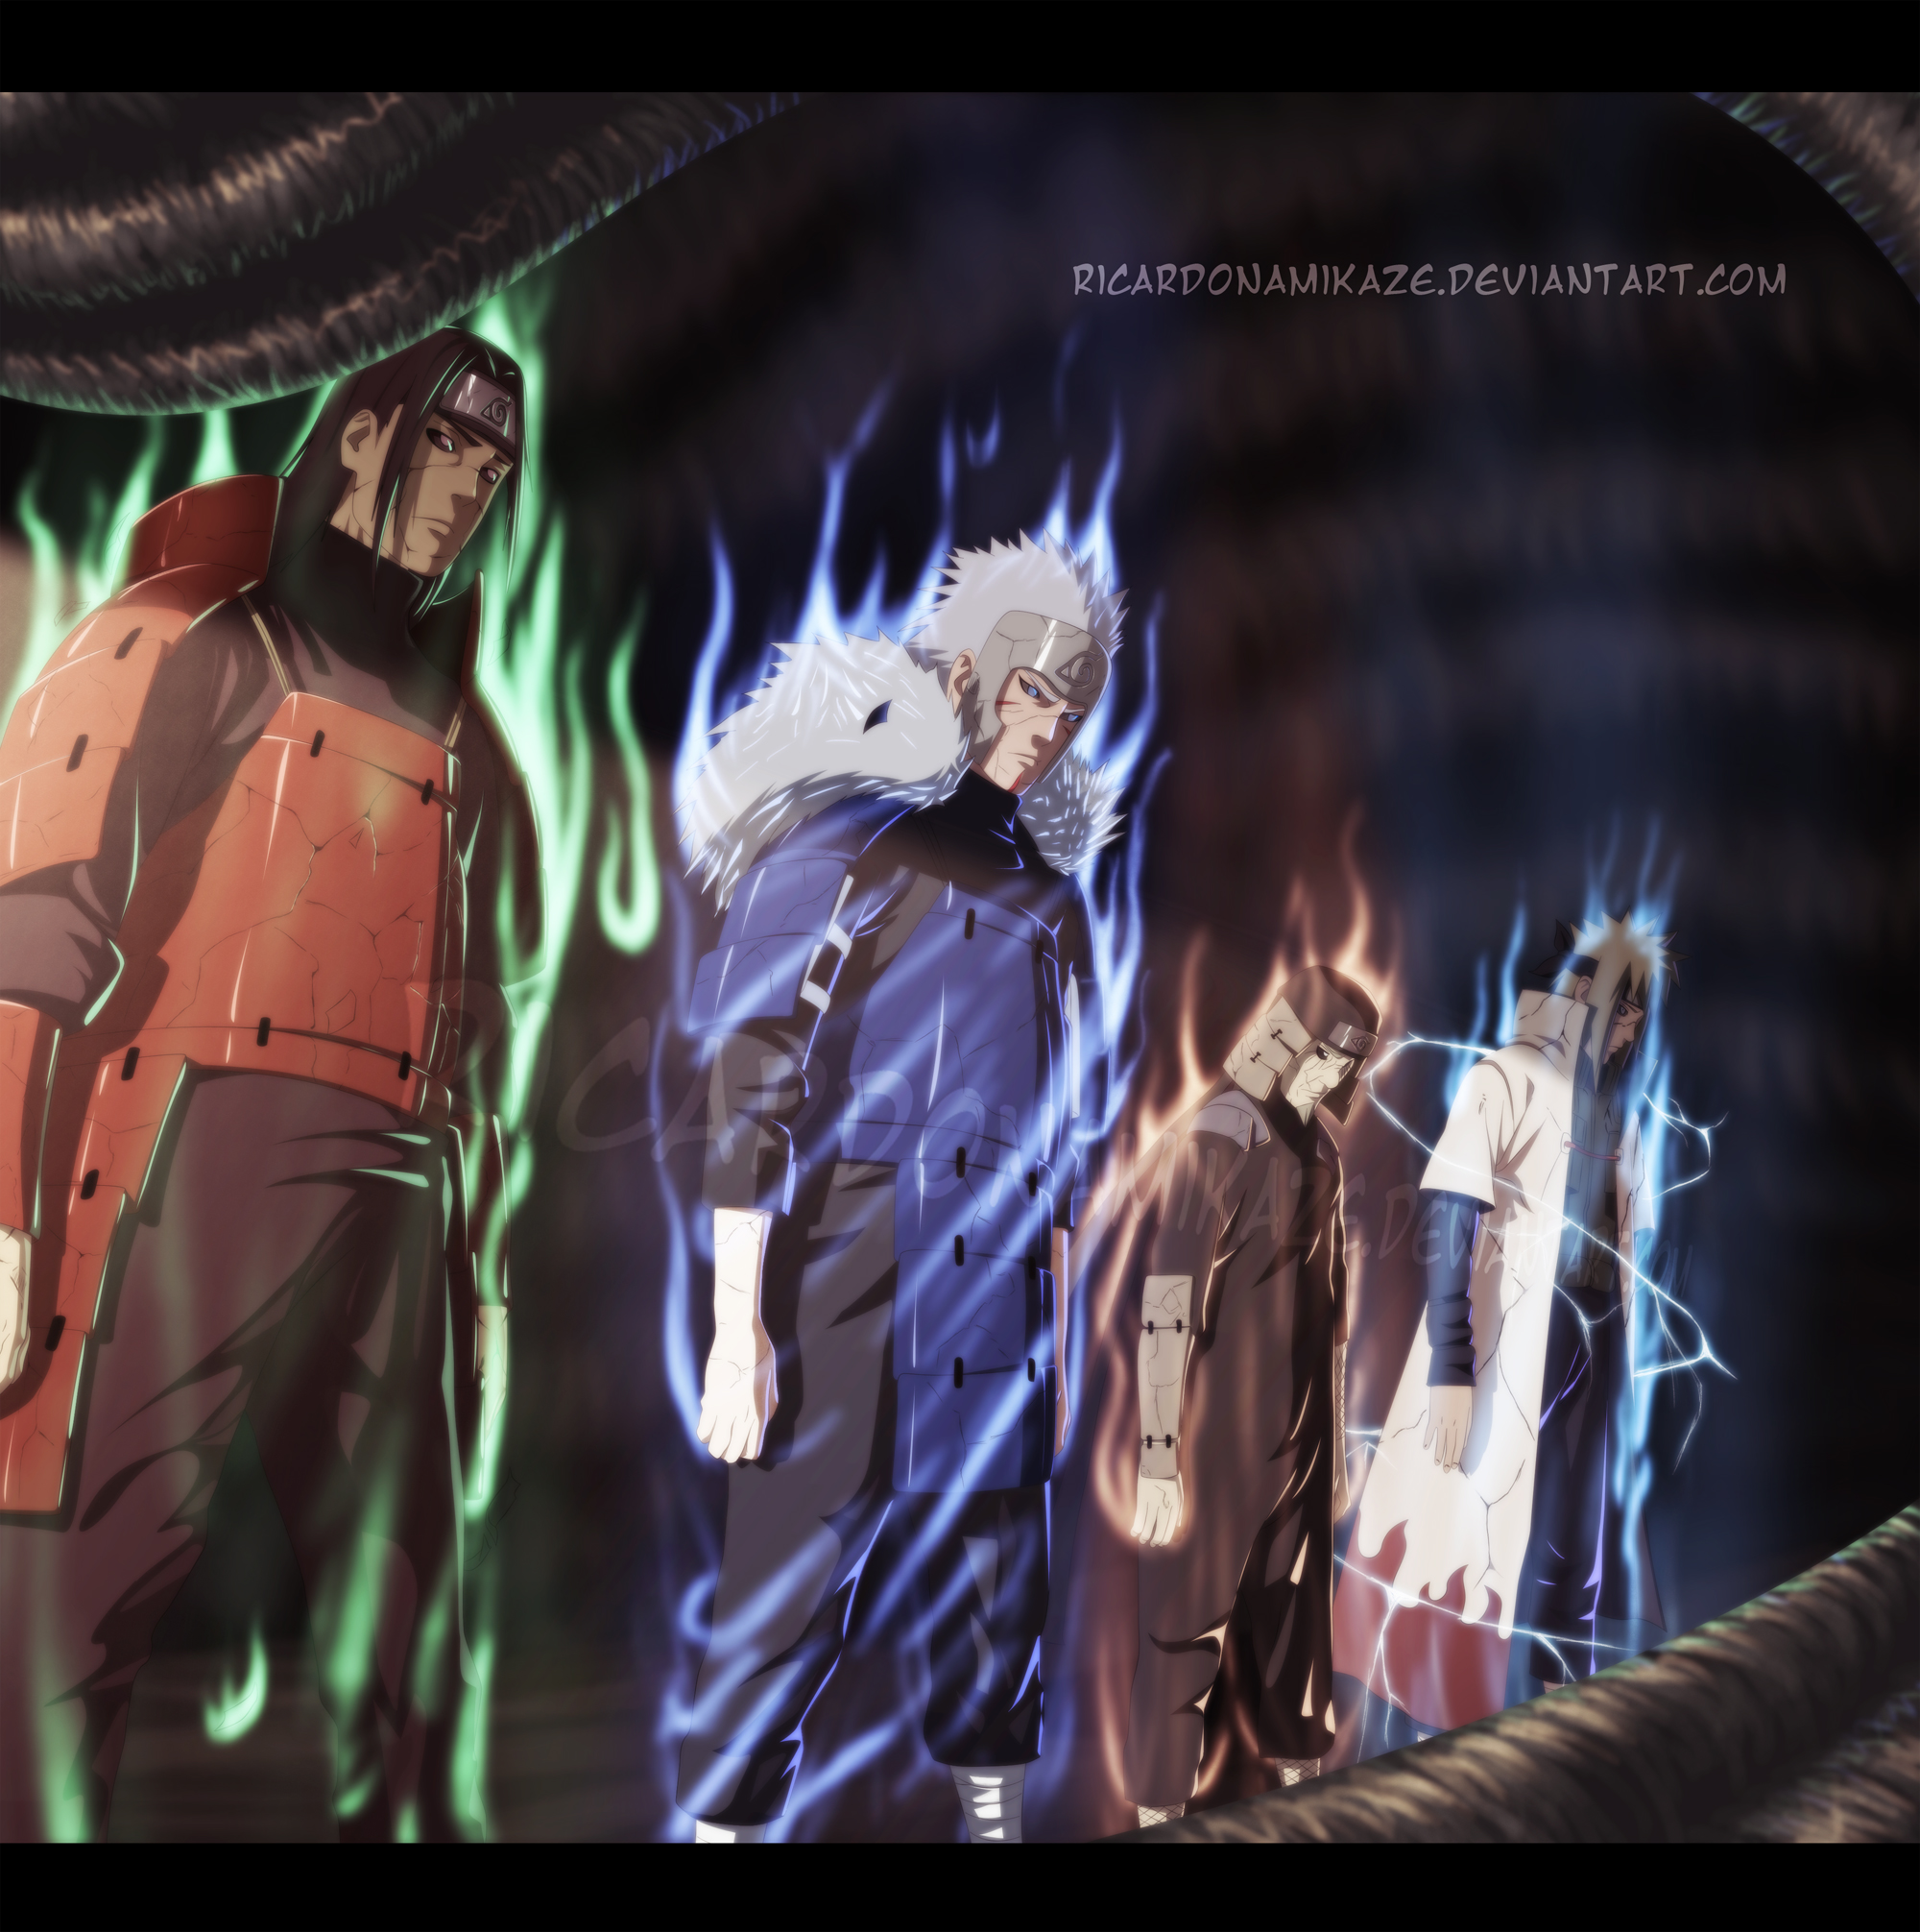 The Previous Hokages. by RicardoNamikaze